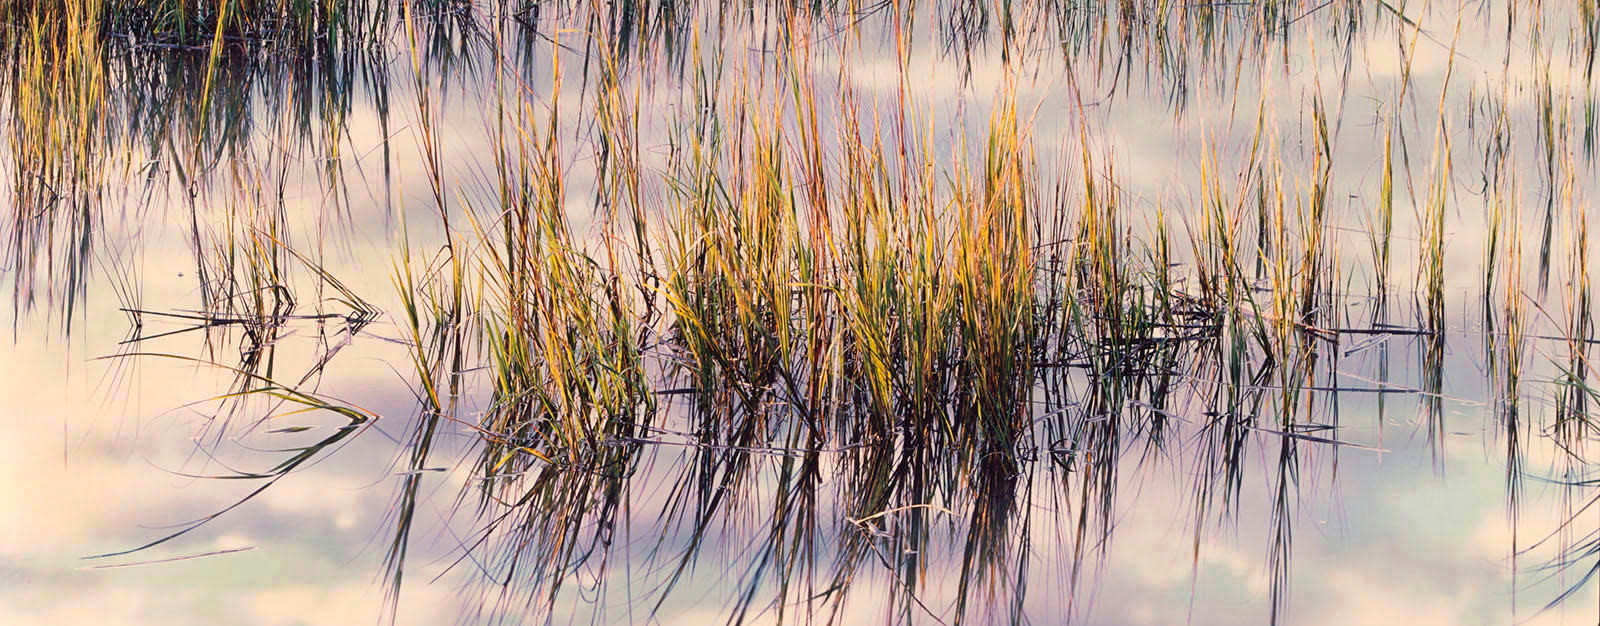 Marsh Grass at Sunrise